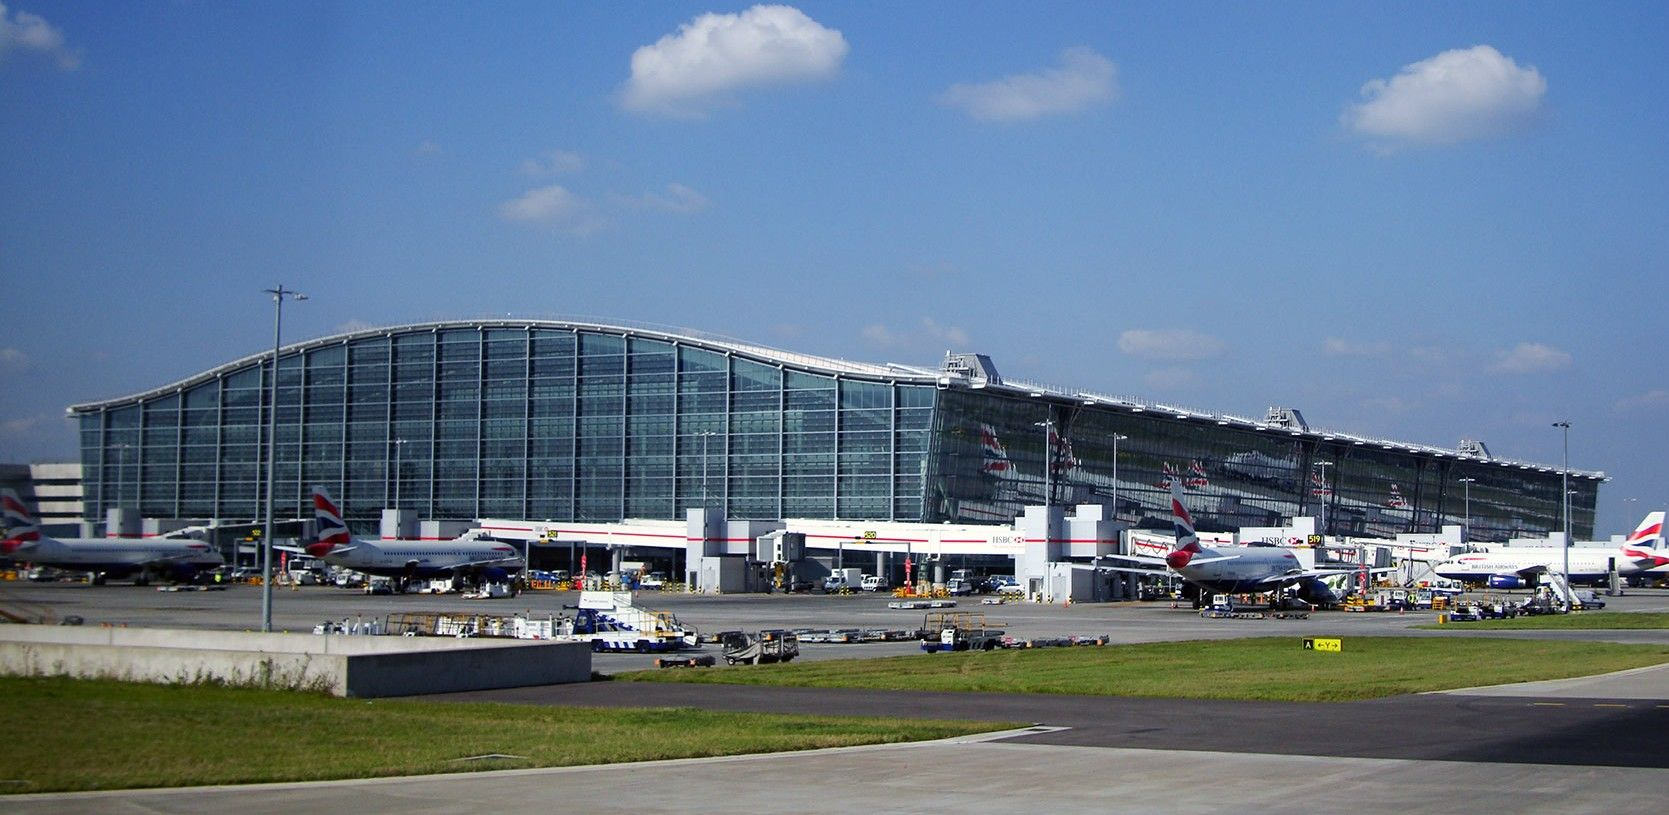 London heathrow airport places ive been pinterest 10 london heathrow airport kristyandbryce Images